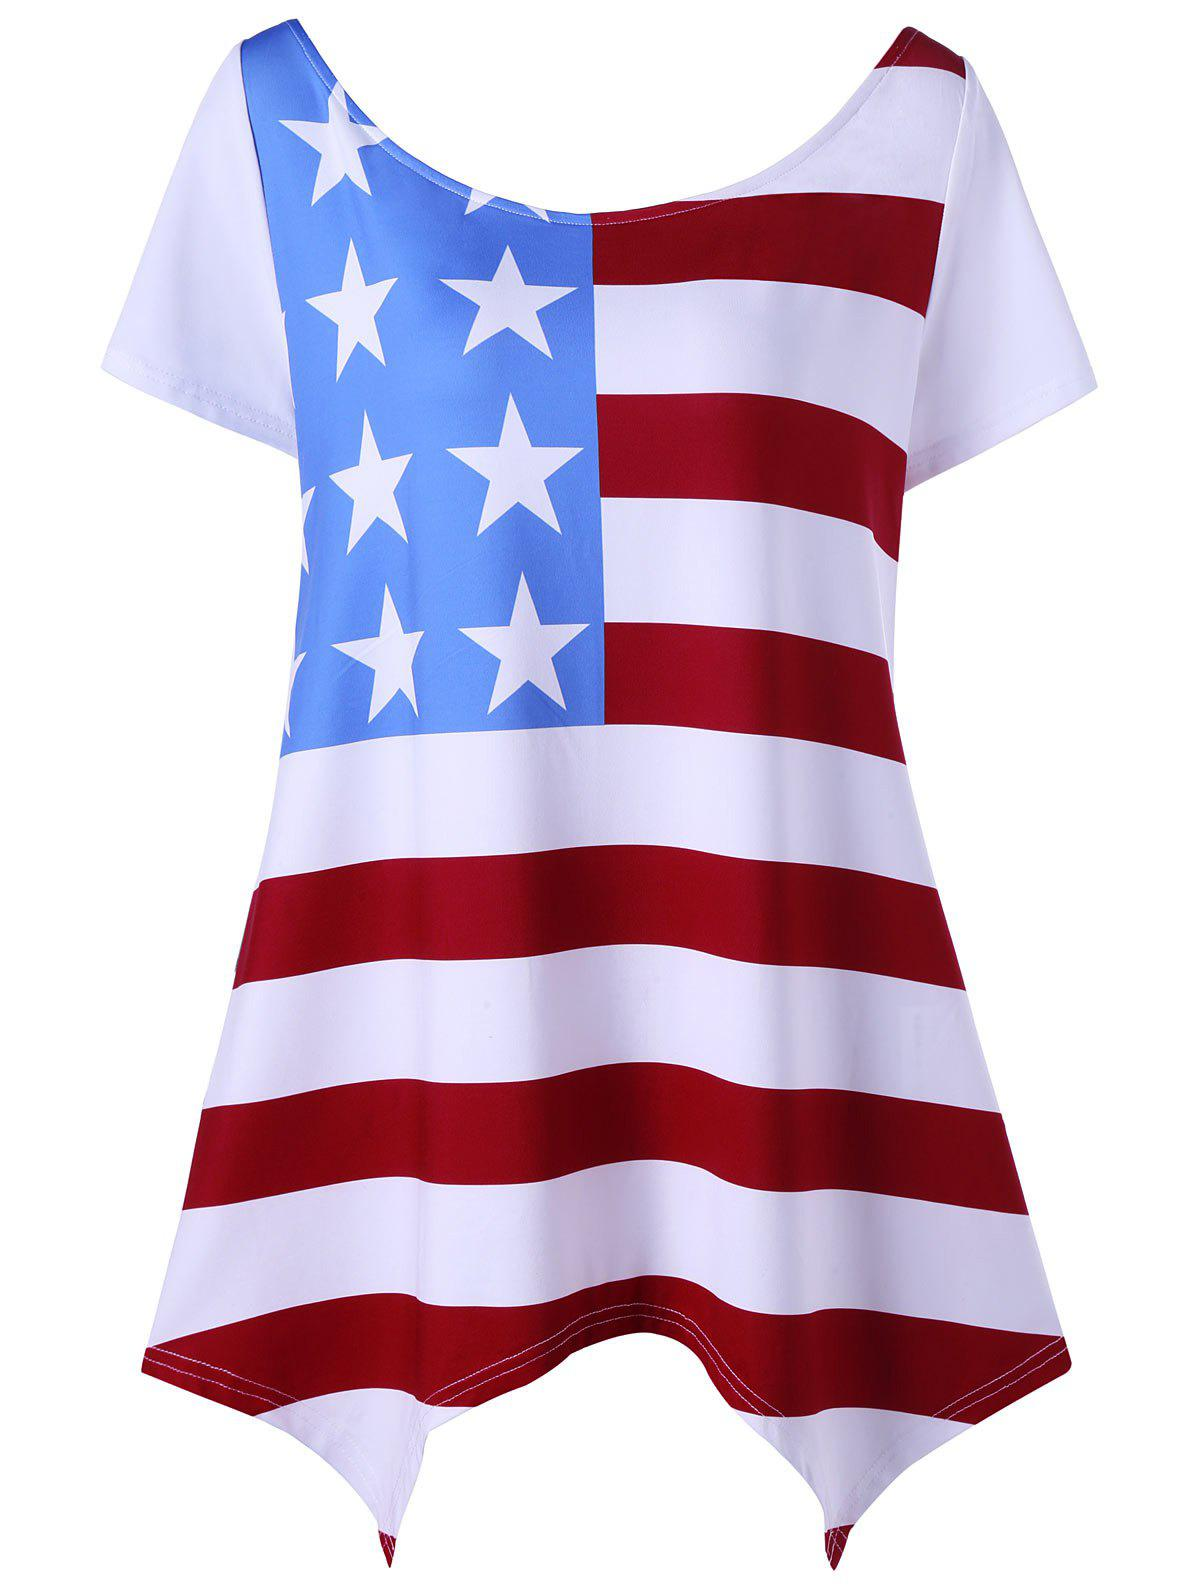 Asymmetric Patriotic Plus Size American Flag T-Shirt free shipping 5pcs lot ty2464 offen use laptop p 100% new original